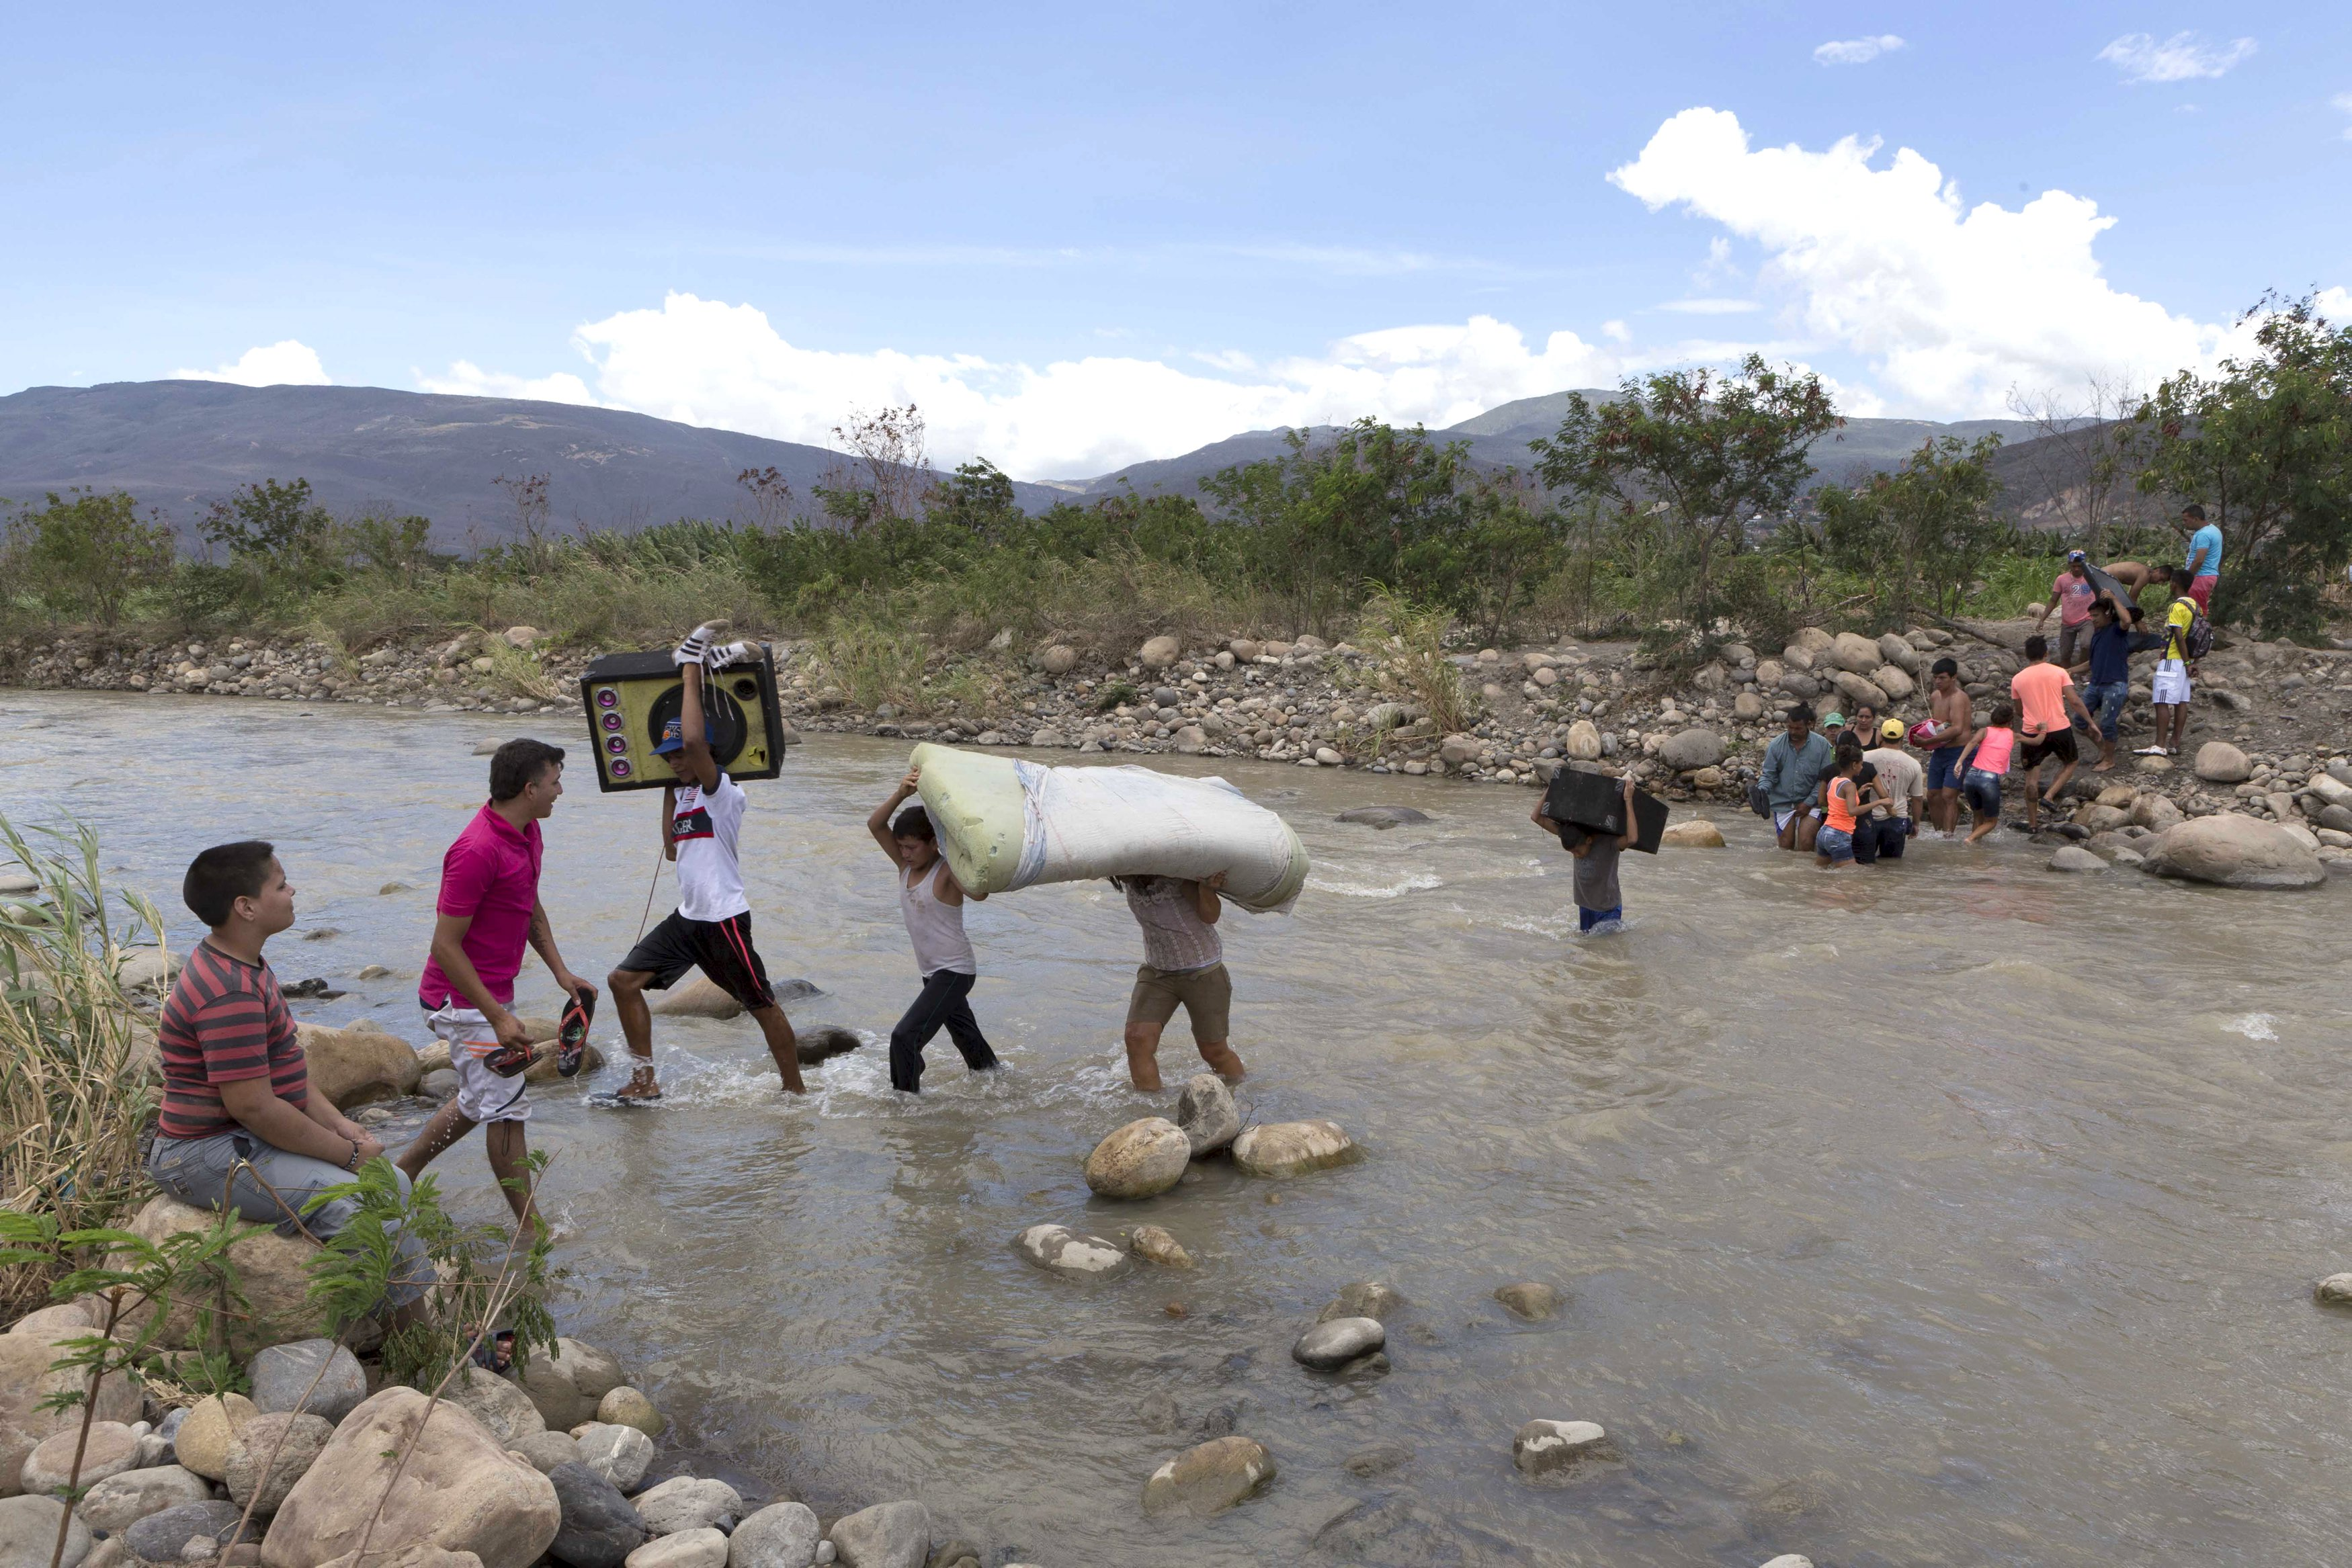 Colombian carry their belongings over from Venezuela as they cross the Tachira river close to Cucuta city, Colombia